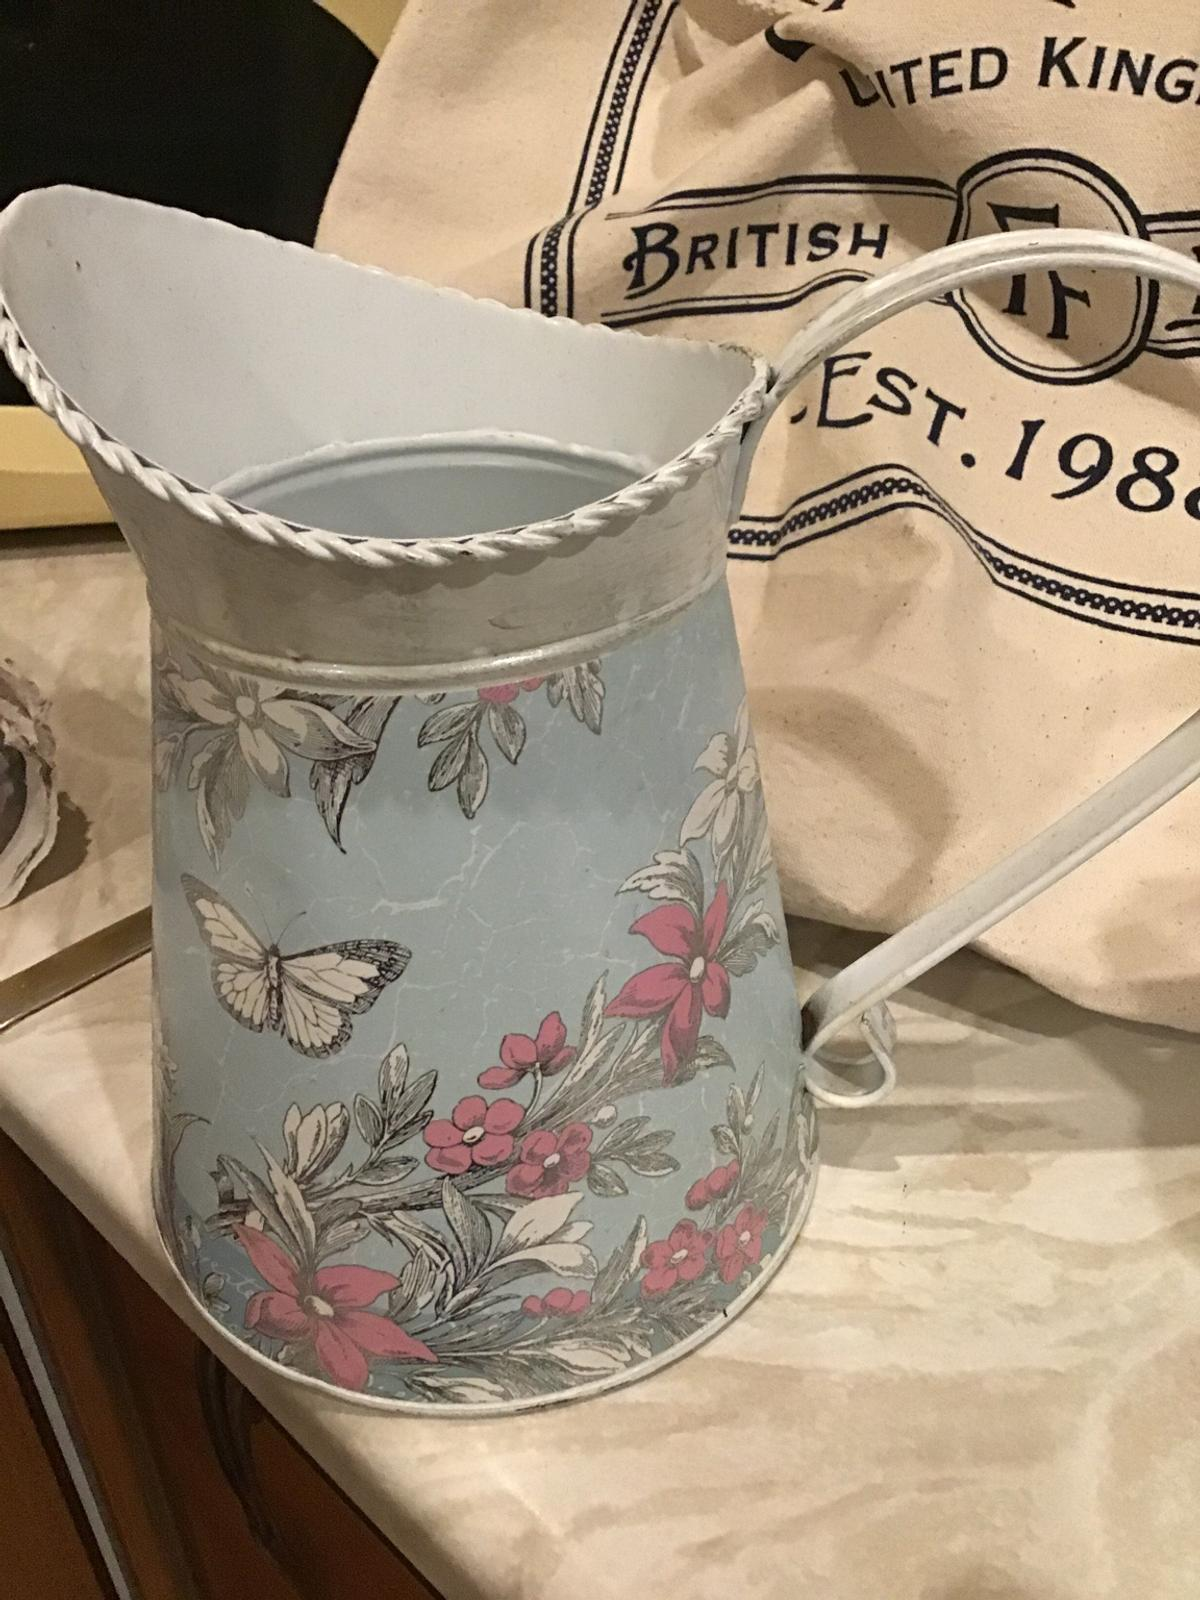 Shabby Chic design great for display decoration flowers and butterflies would make a lovely gift 🎁 new with tags